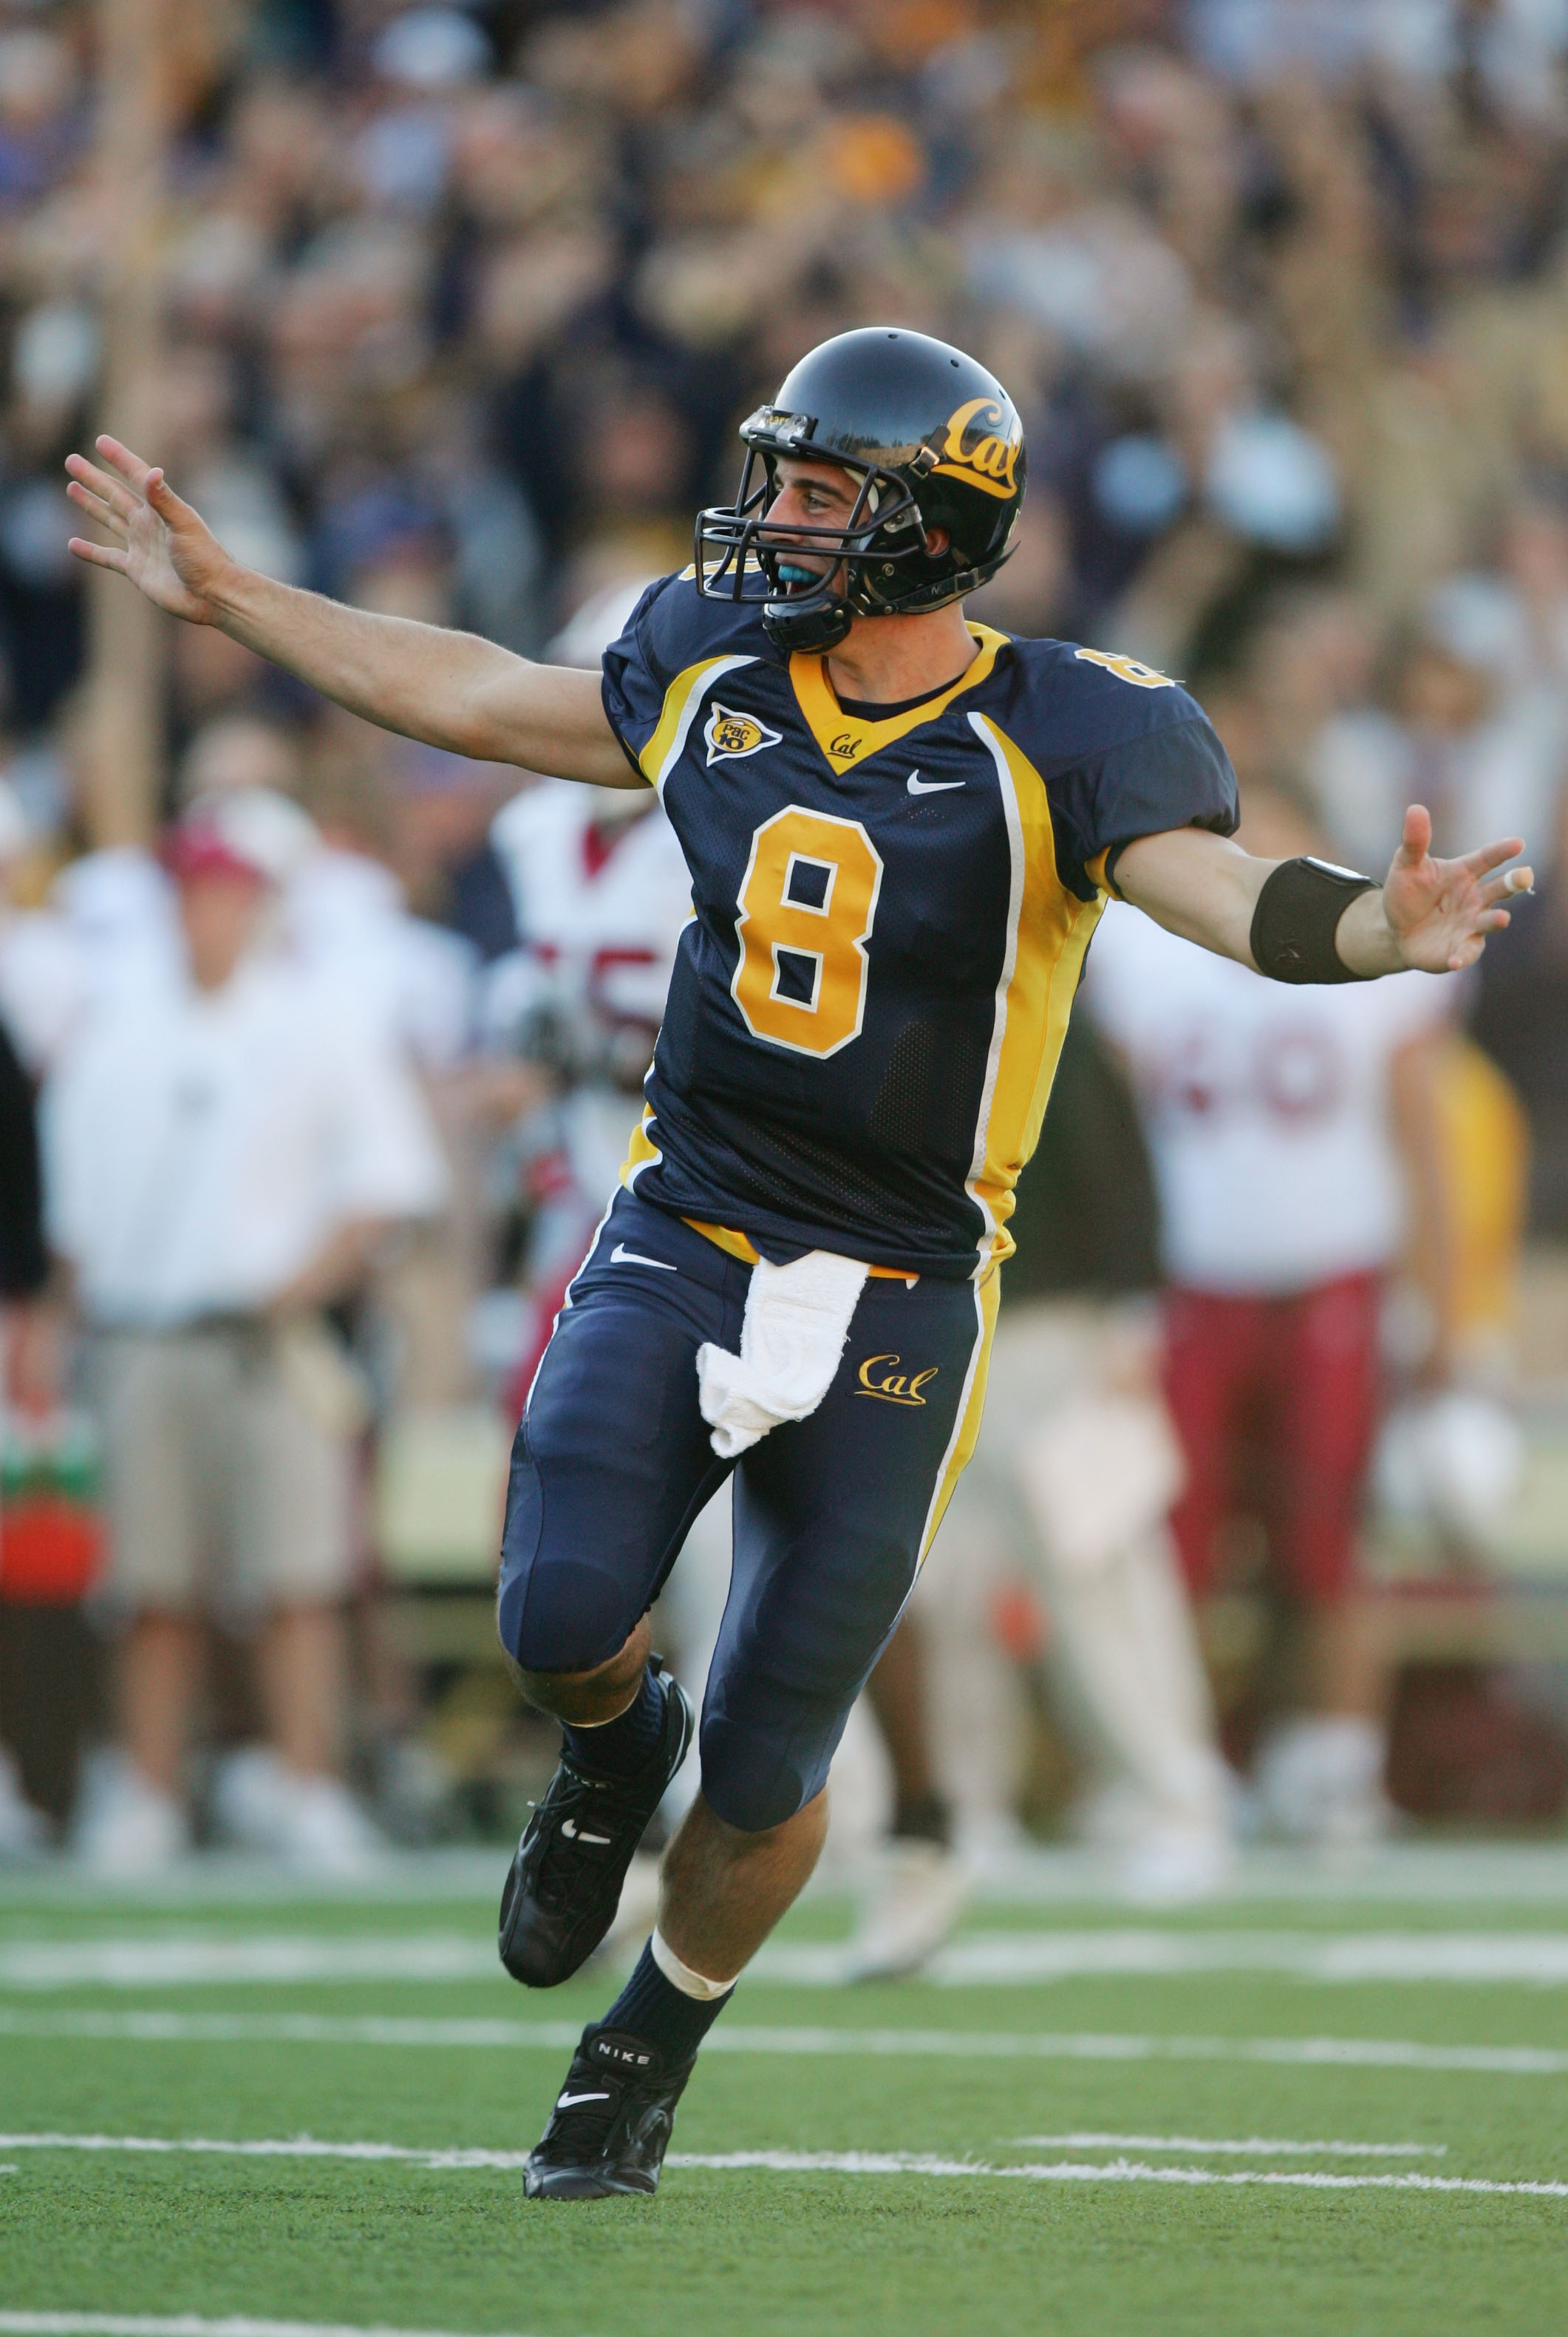 Rodgers Shines In His 2 Seasons At CAL